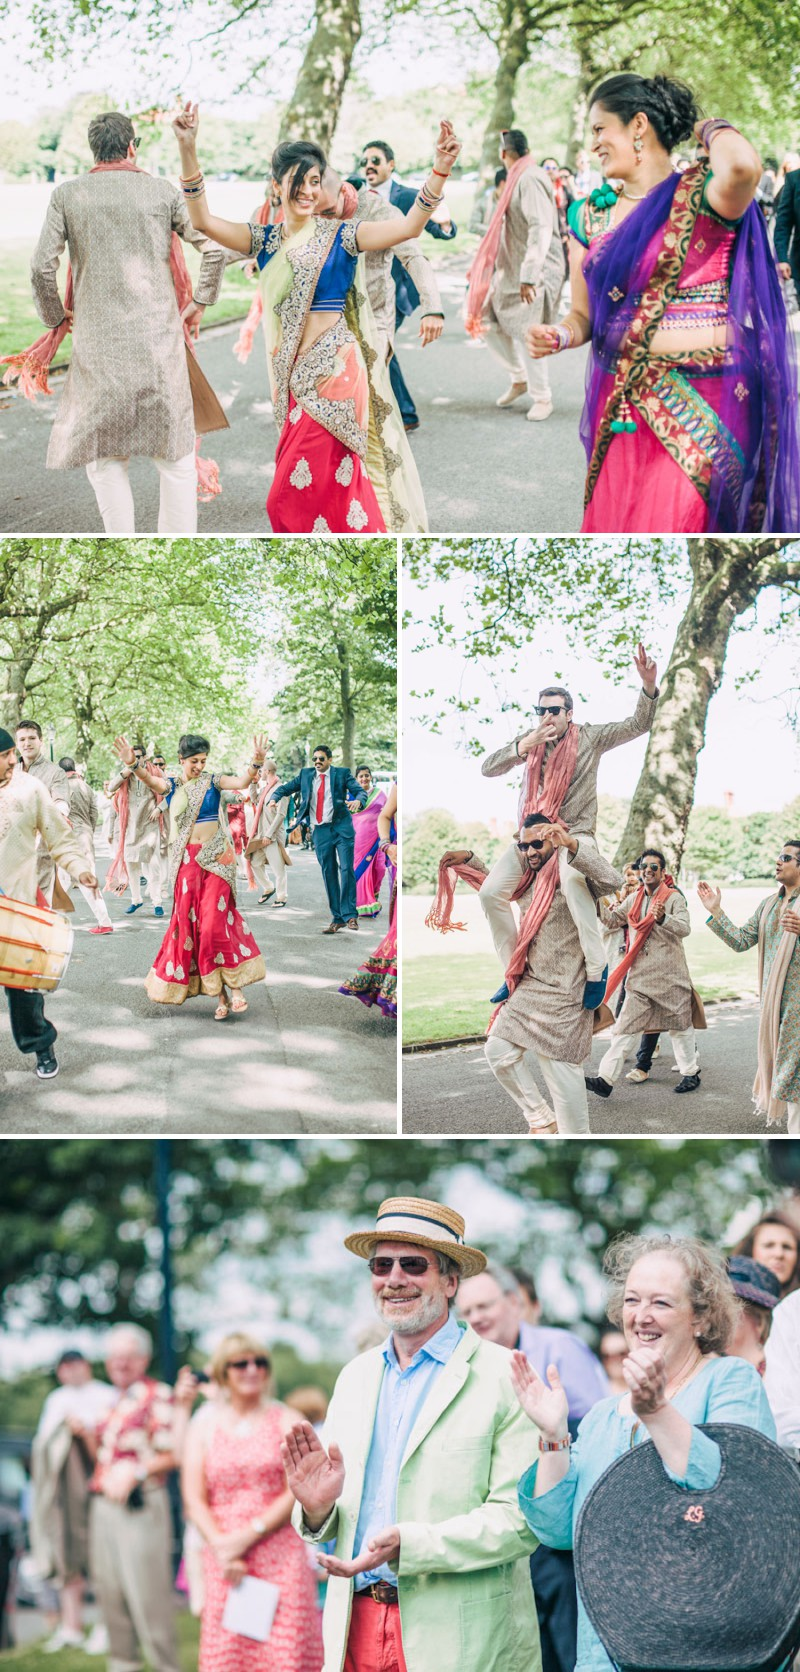 An Exotic Indian and English Fusion Wedding At Sefton Park Palm House In Liverpool With A Beautiful Vintage Lagonda And A Pink Handpicked Bouquet By Wookie Photography._0001